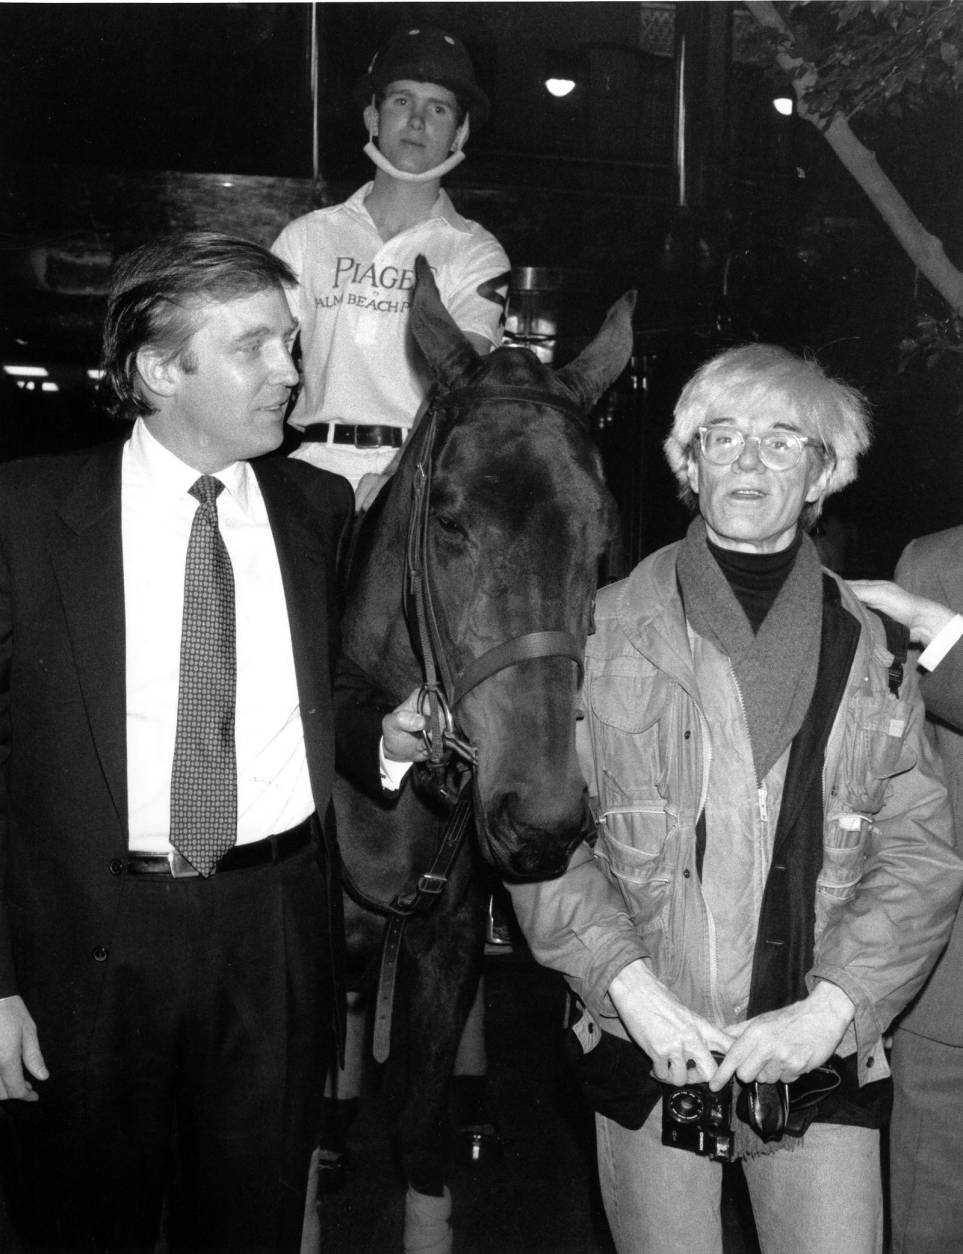 Donald Trump owner of New York's Trump Tower, holds the bridle of a polo pony while talking to Andy Warhol on Nov. 4, 1983.  Yale University polo player Eric Stever sits astride the horse.  (AP Photo/Mario Suriani)